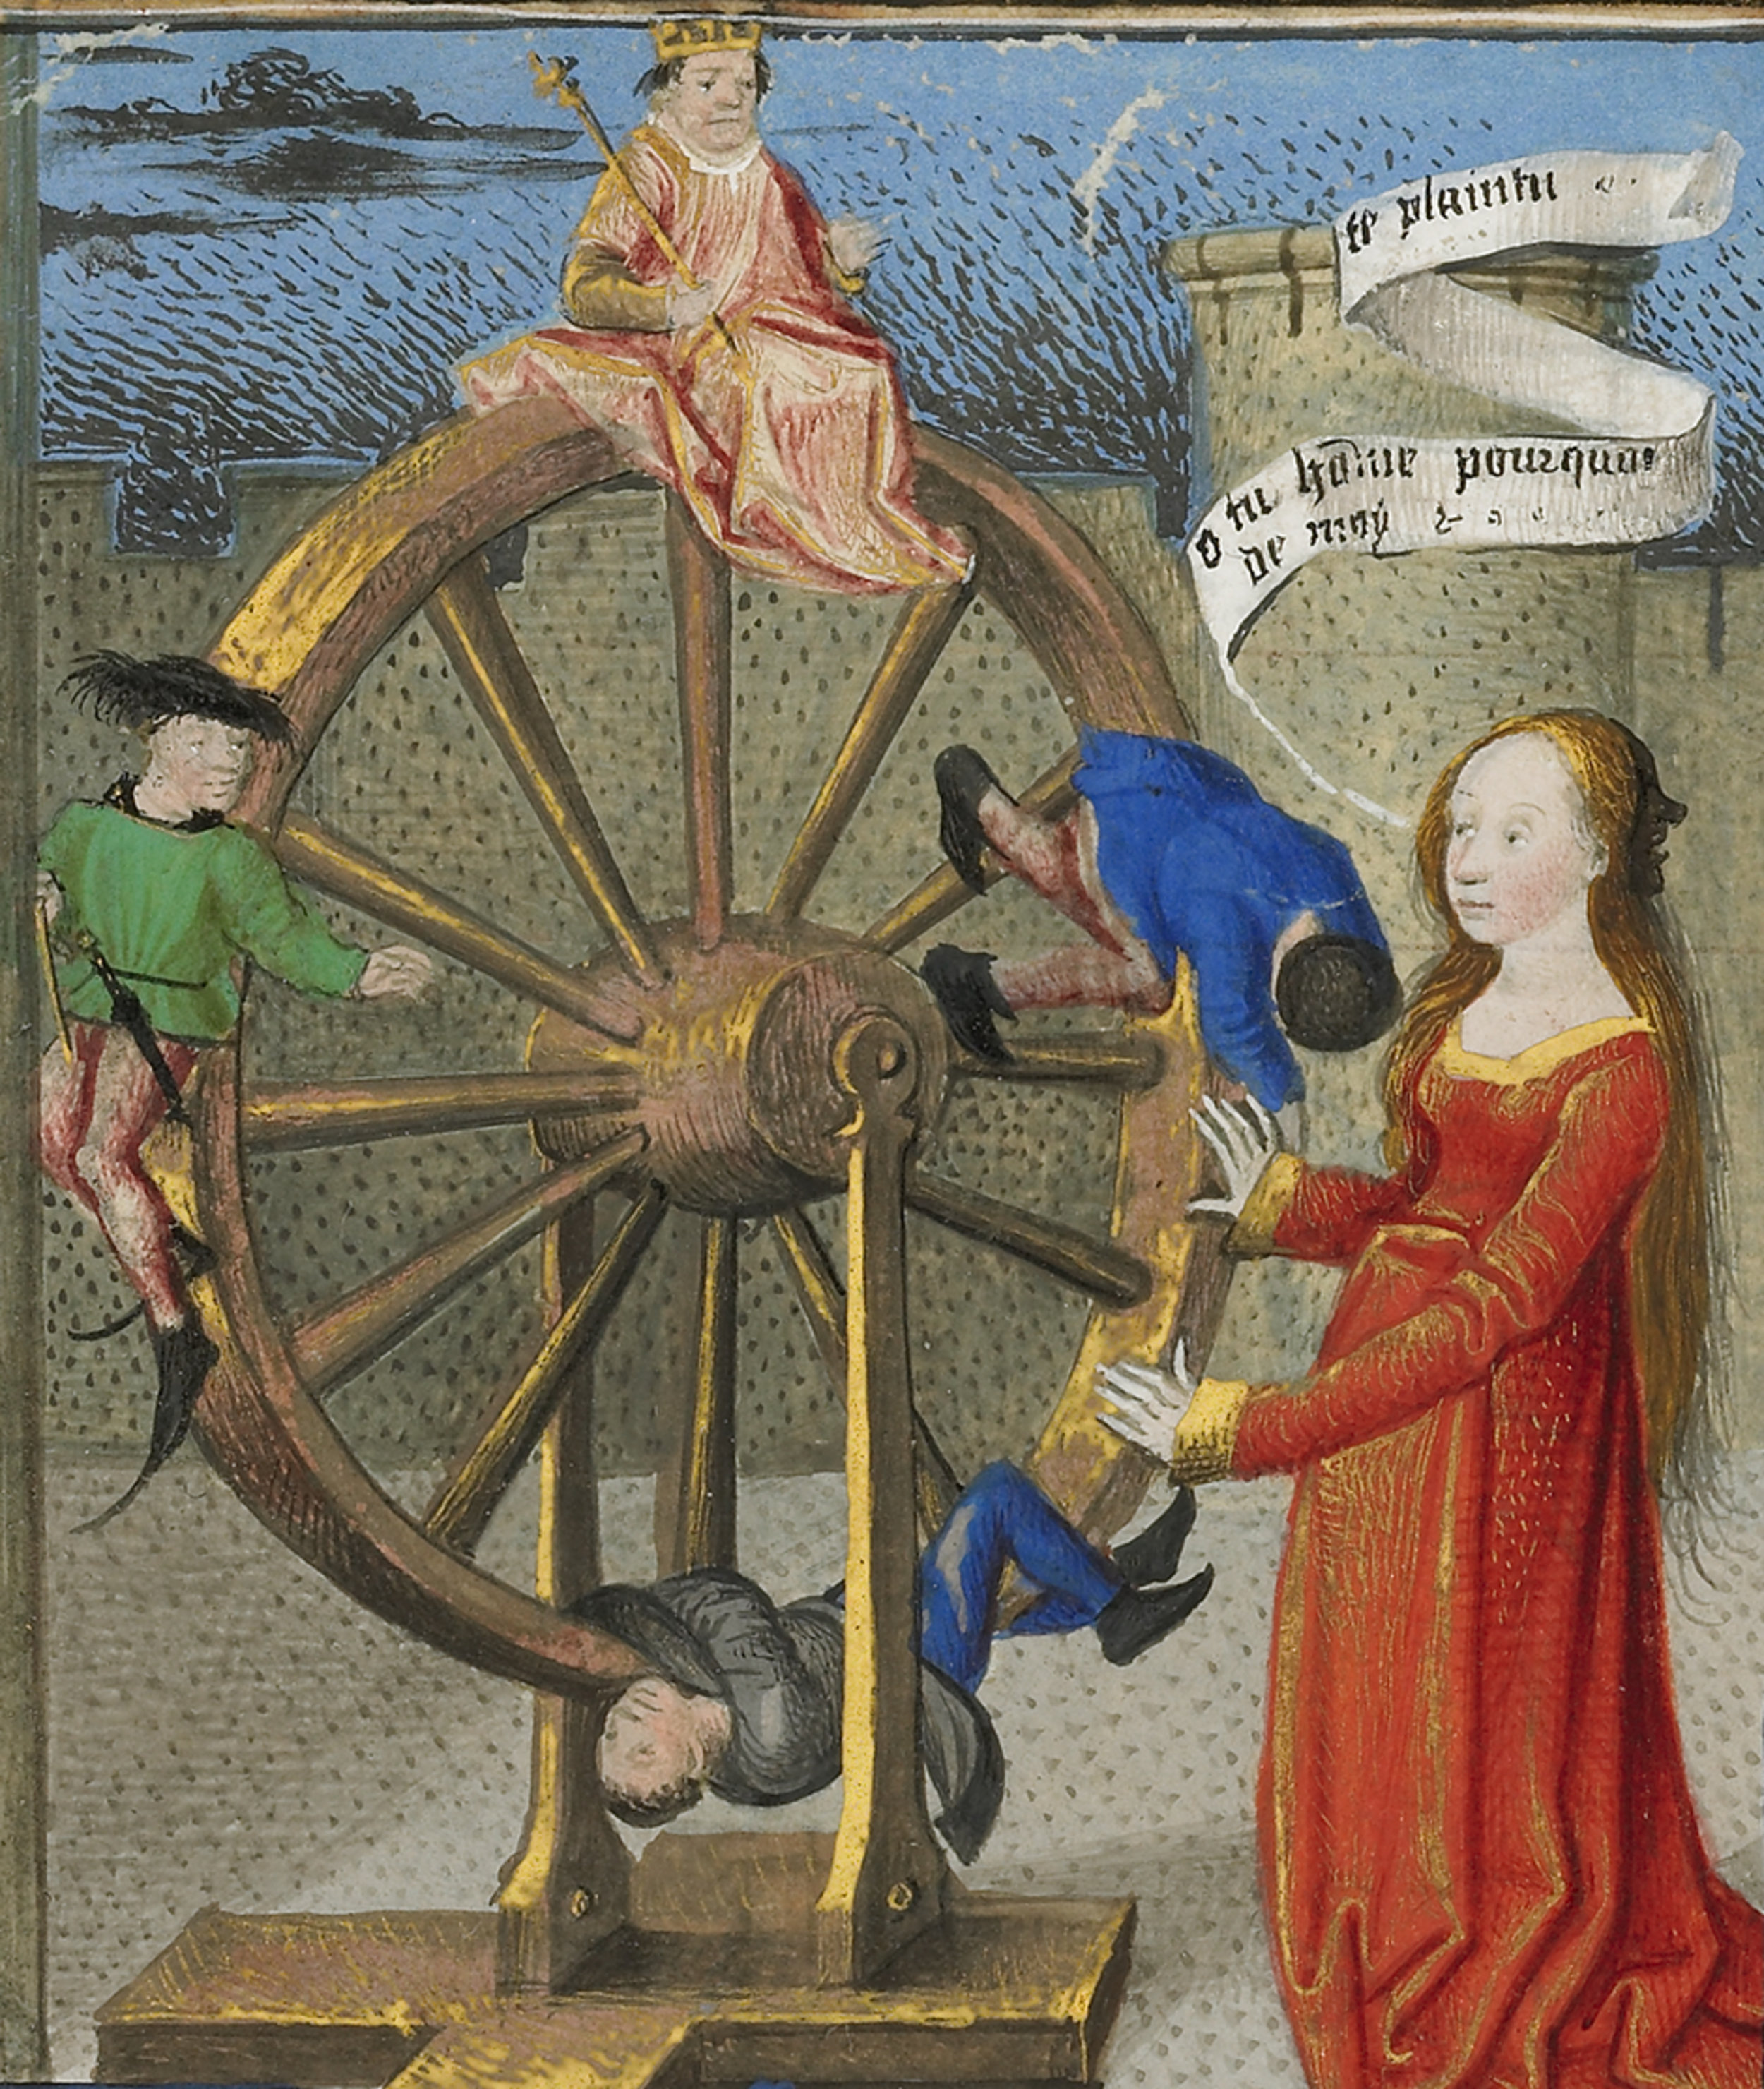 Coëtivy Master (Henri de Vulcop?) (French, active about 1450 - 1485)   Philosophy Consoling Boethius and Fortune Turning the Wheel  , about 1460 - 1470, Tempera colors, gold leaf, and gold paint on parchment   Leaf: 7.3 x 17 cm (2 7/8 x 6 11/16 in.)   The J. Paul Getty Museum, Los Angeles